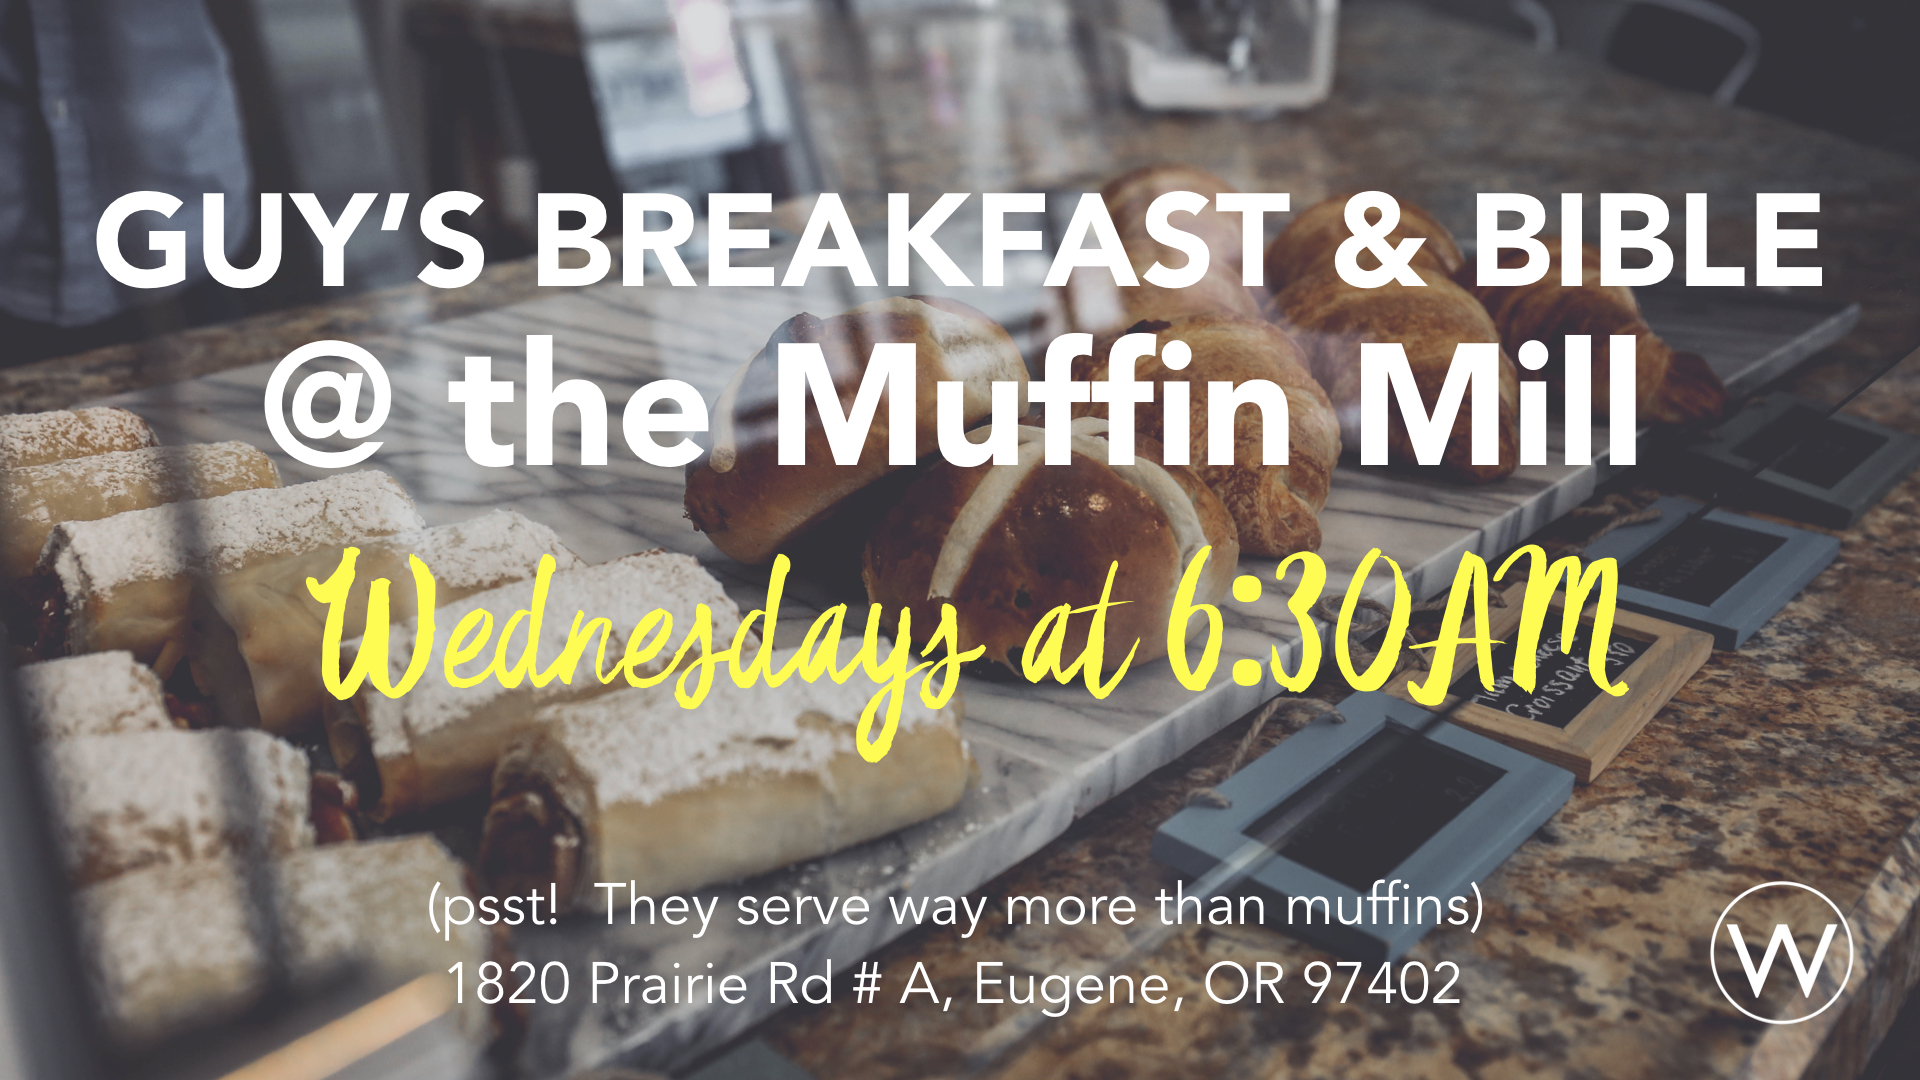 The Muffin Mill  1820 Prairie Rd # A, Eugene, OR 97402  - Contact Brooks at brooks@westsidefaithcenter.com for more information.